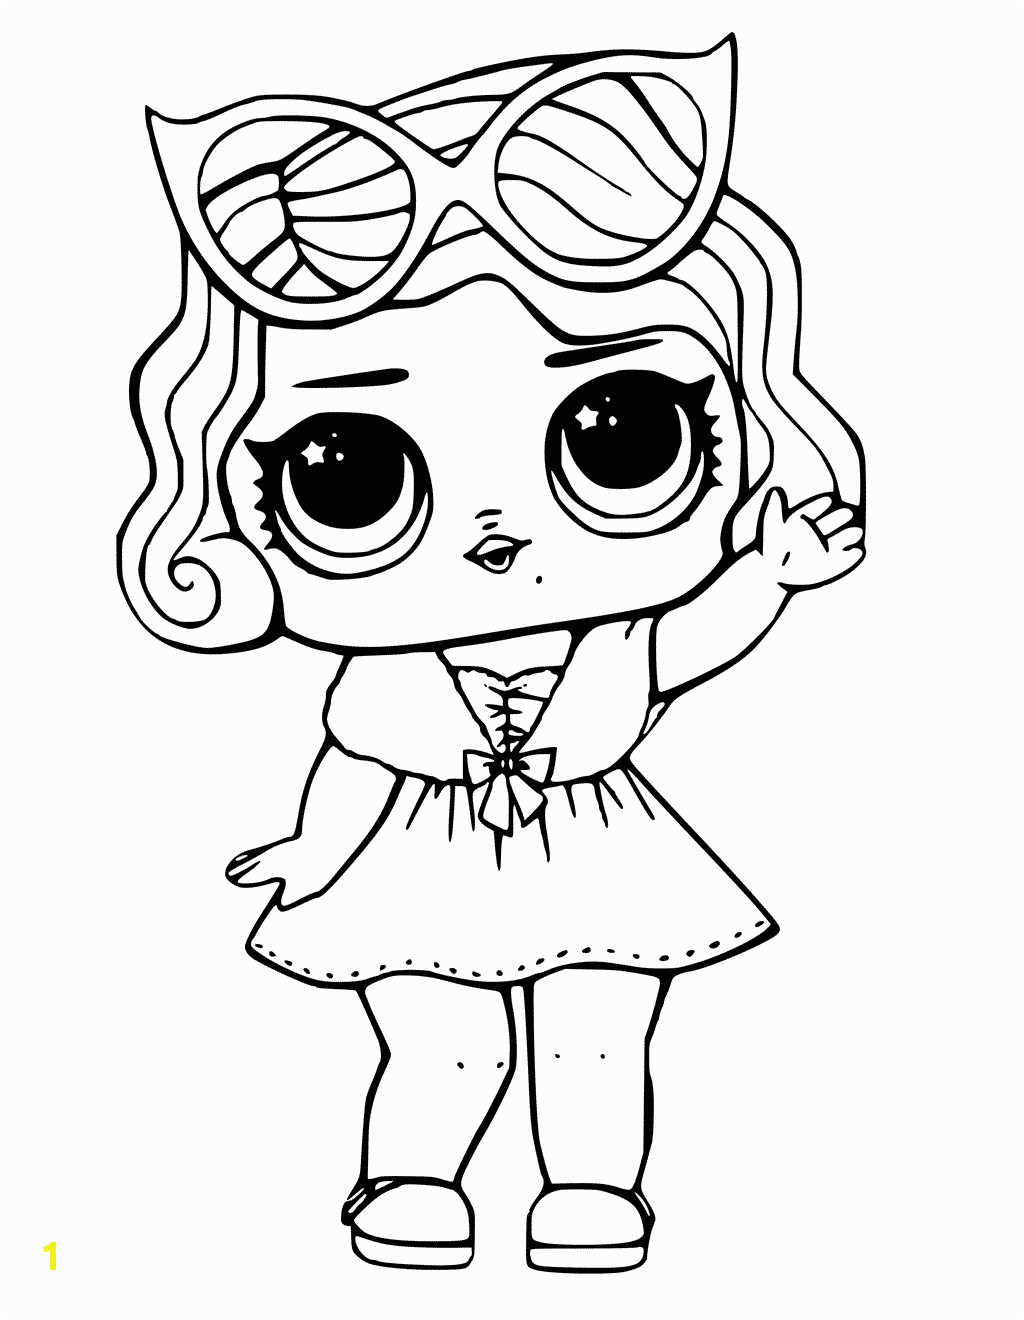 Coloring Pages for Kids Lol Dolls Lol Dolls Coloring Pages Best Coloring Pages for Kids